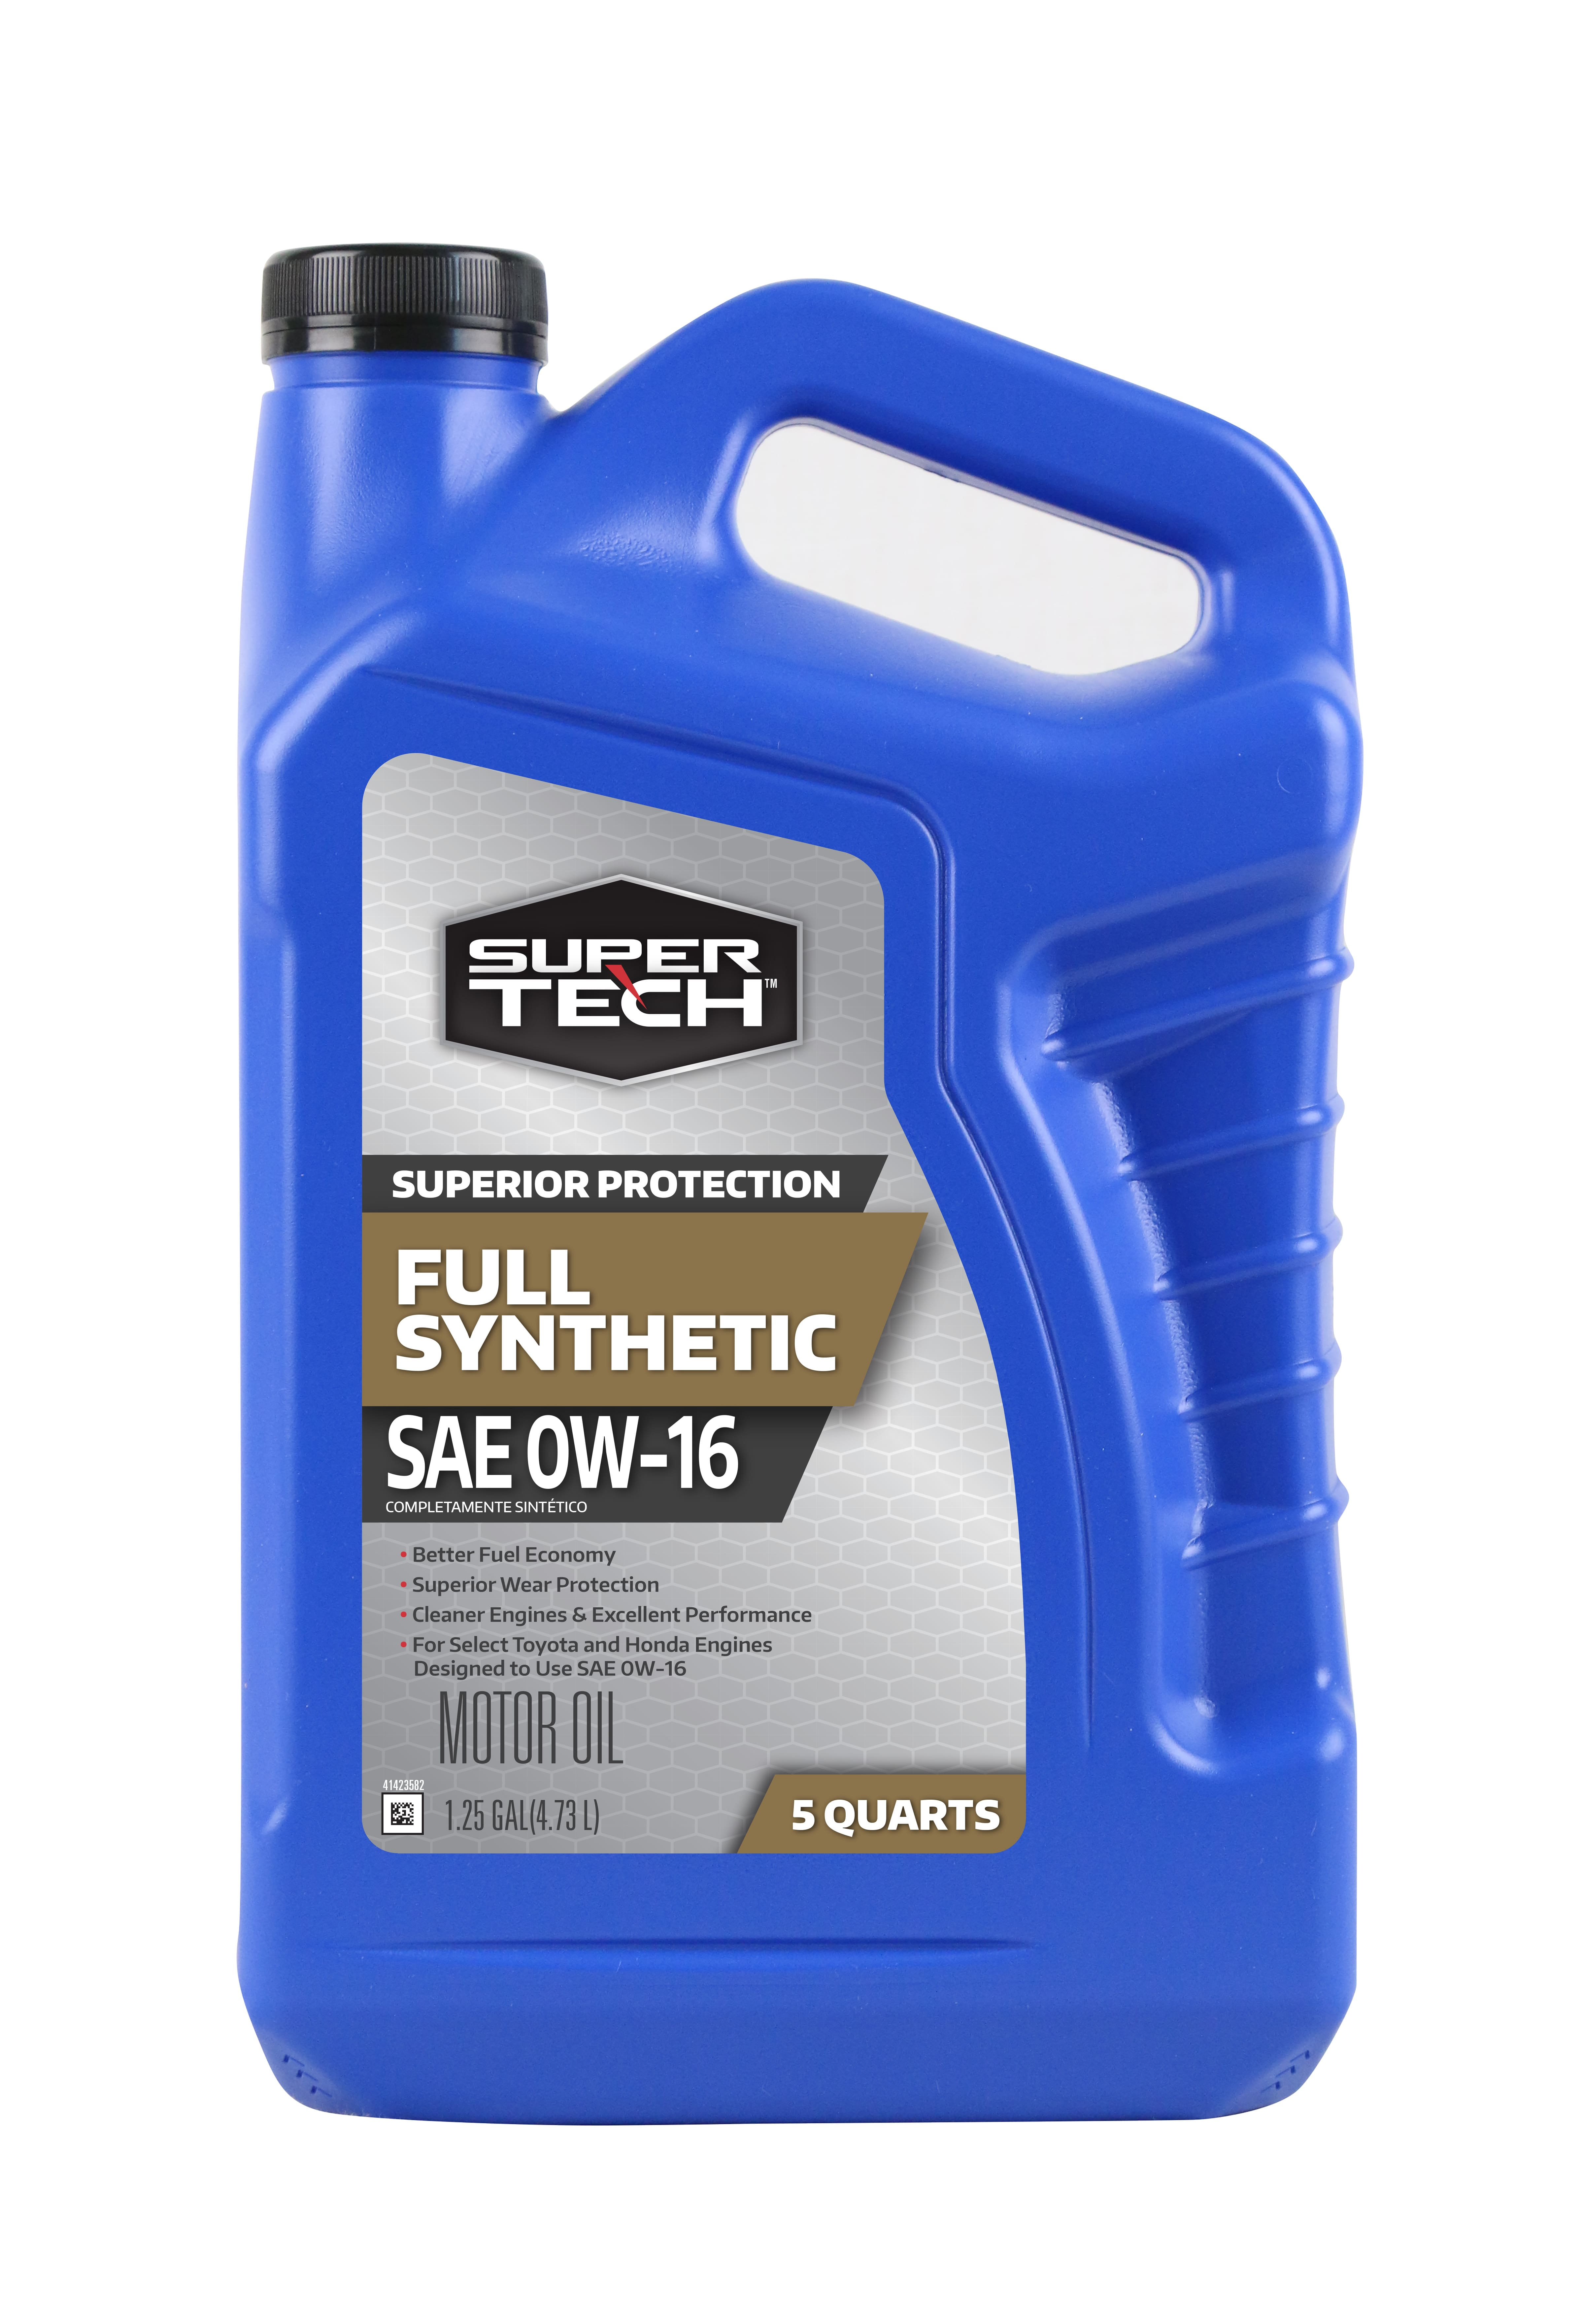 Super Tech full synthetic 0w16 5qt $7 in store only YMMV